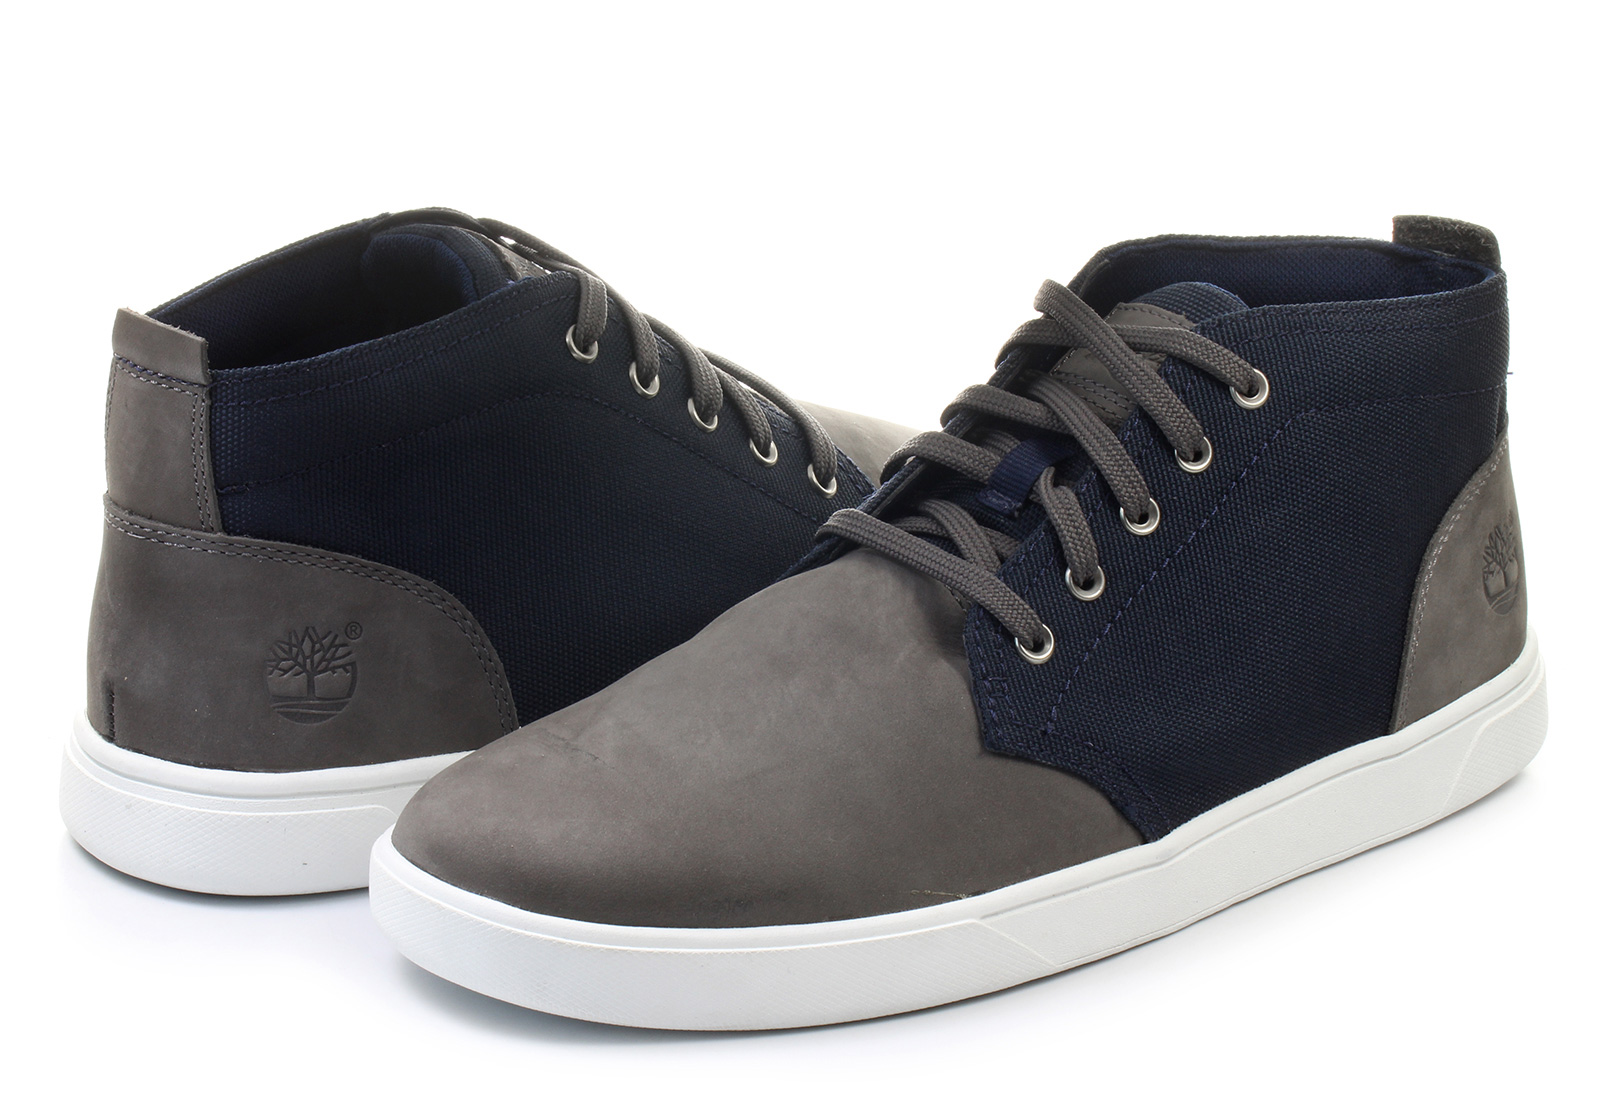 Timberland Shoes Groveton Chukka a112p gry Online shop for sneakers, shoes and boots